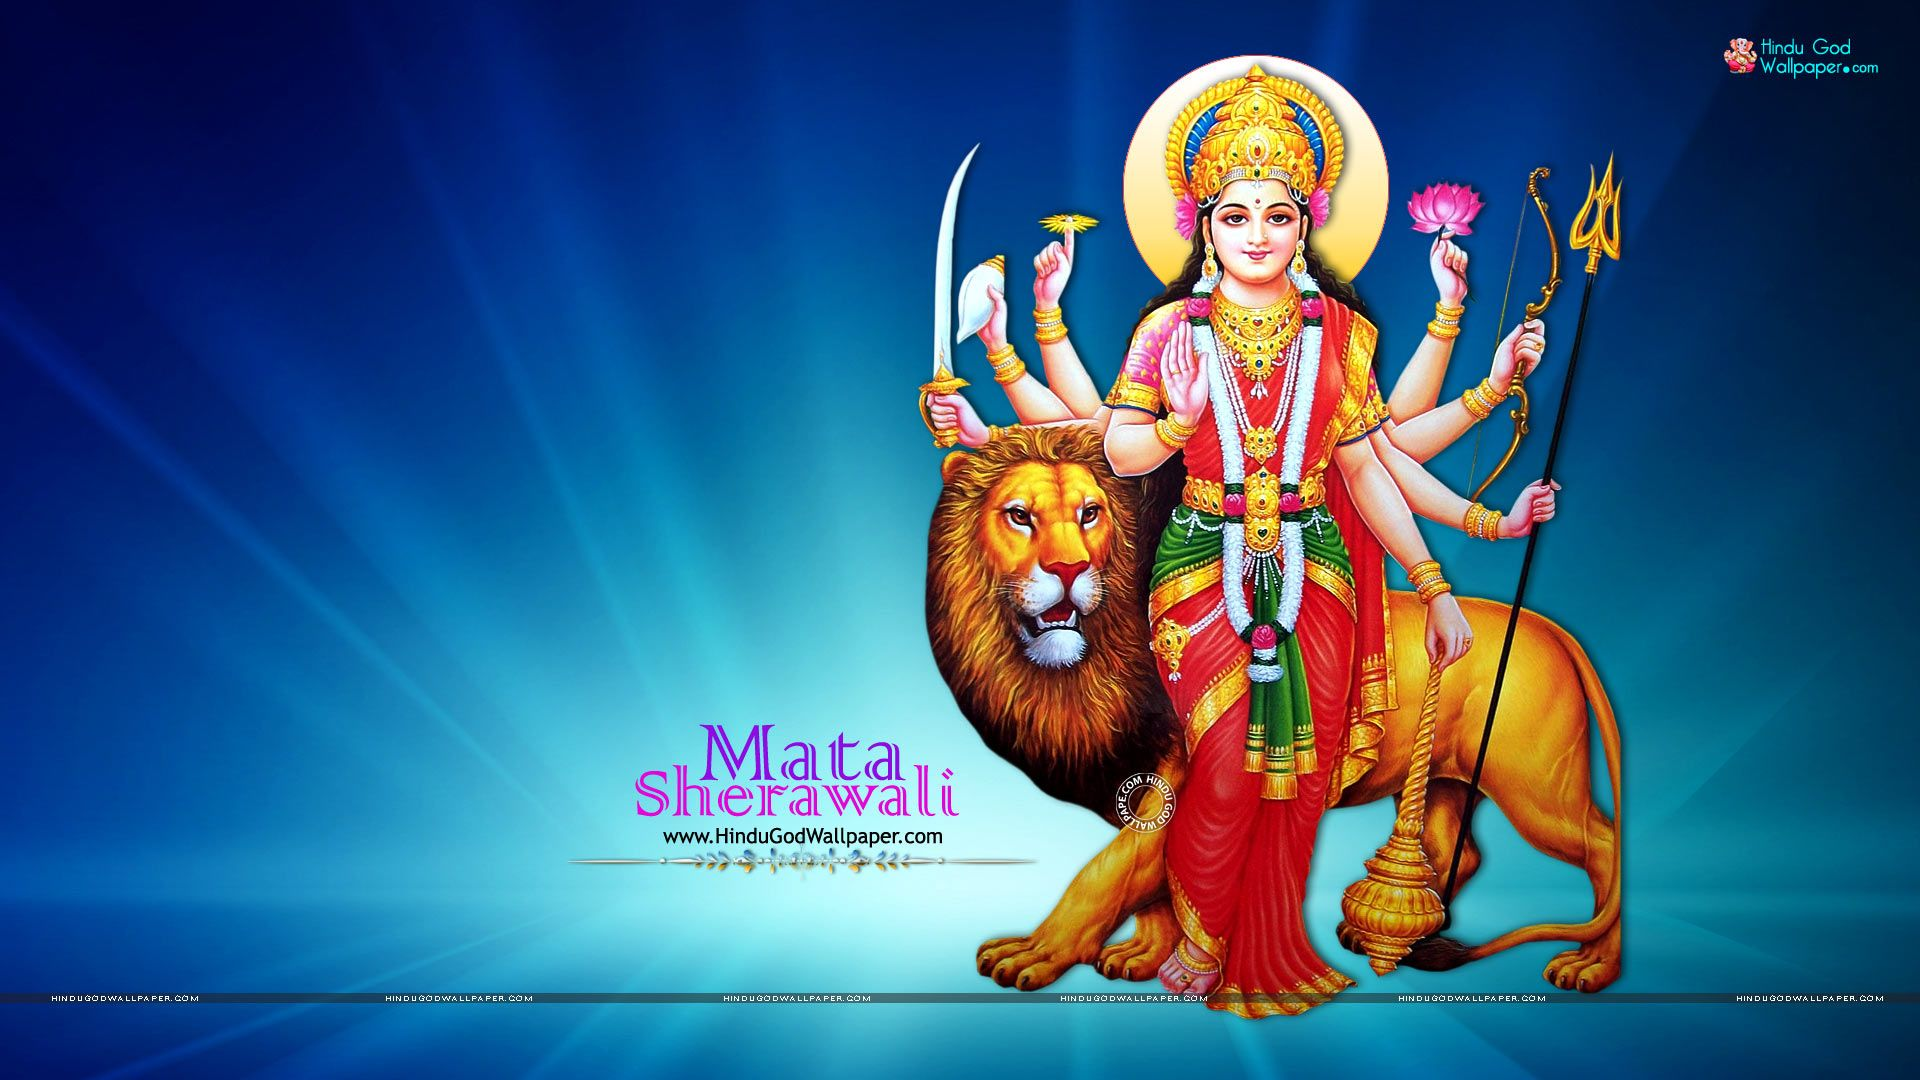 Sherawali Mata Durga Wallpaper Hd Full Size Download Hd Wallpaper